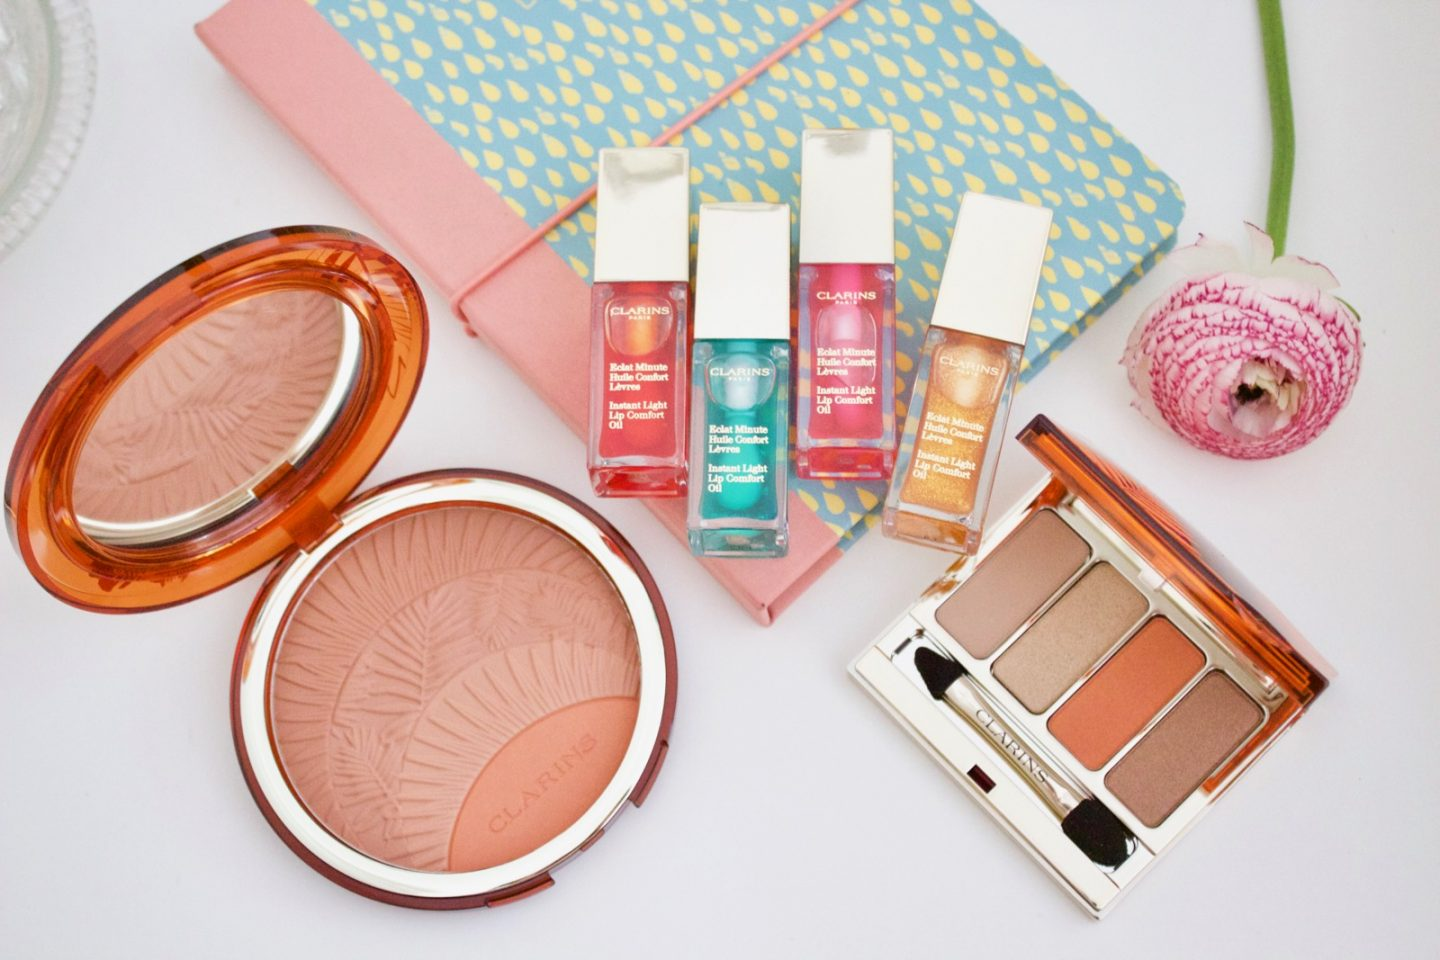 Clarins Summer 2017 Sunkissed Collection